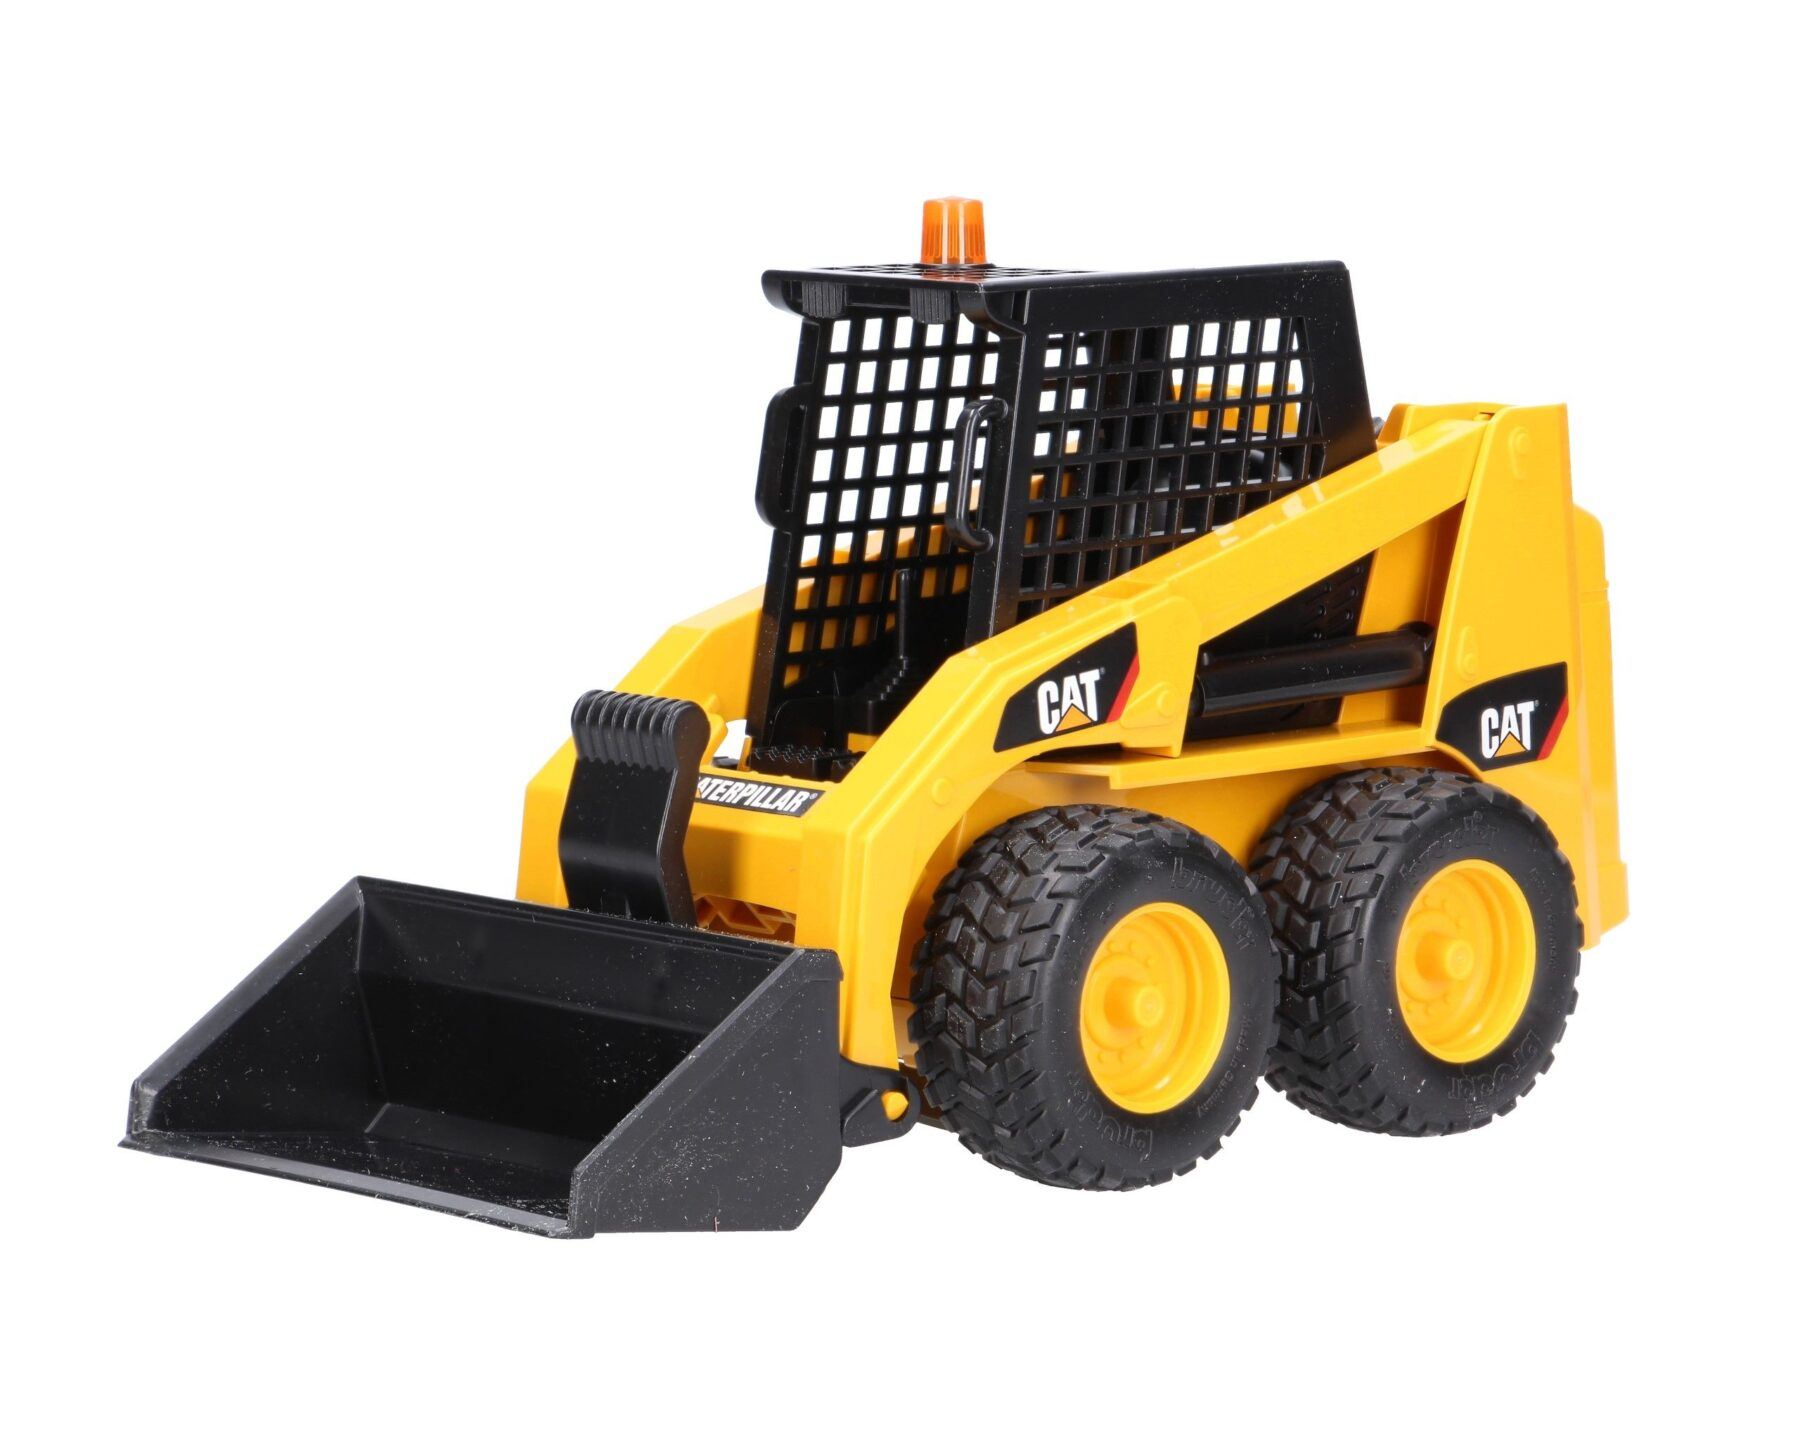 18970טרקטור CAT Skid Steer Loader – ברודר 2481